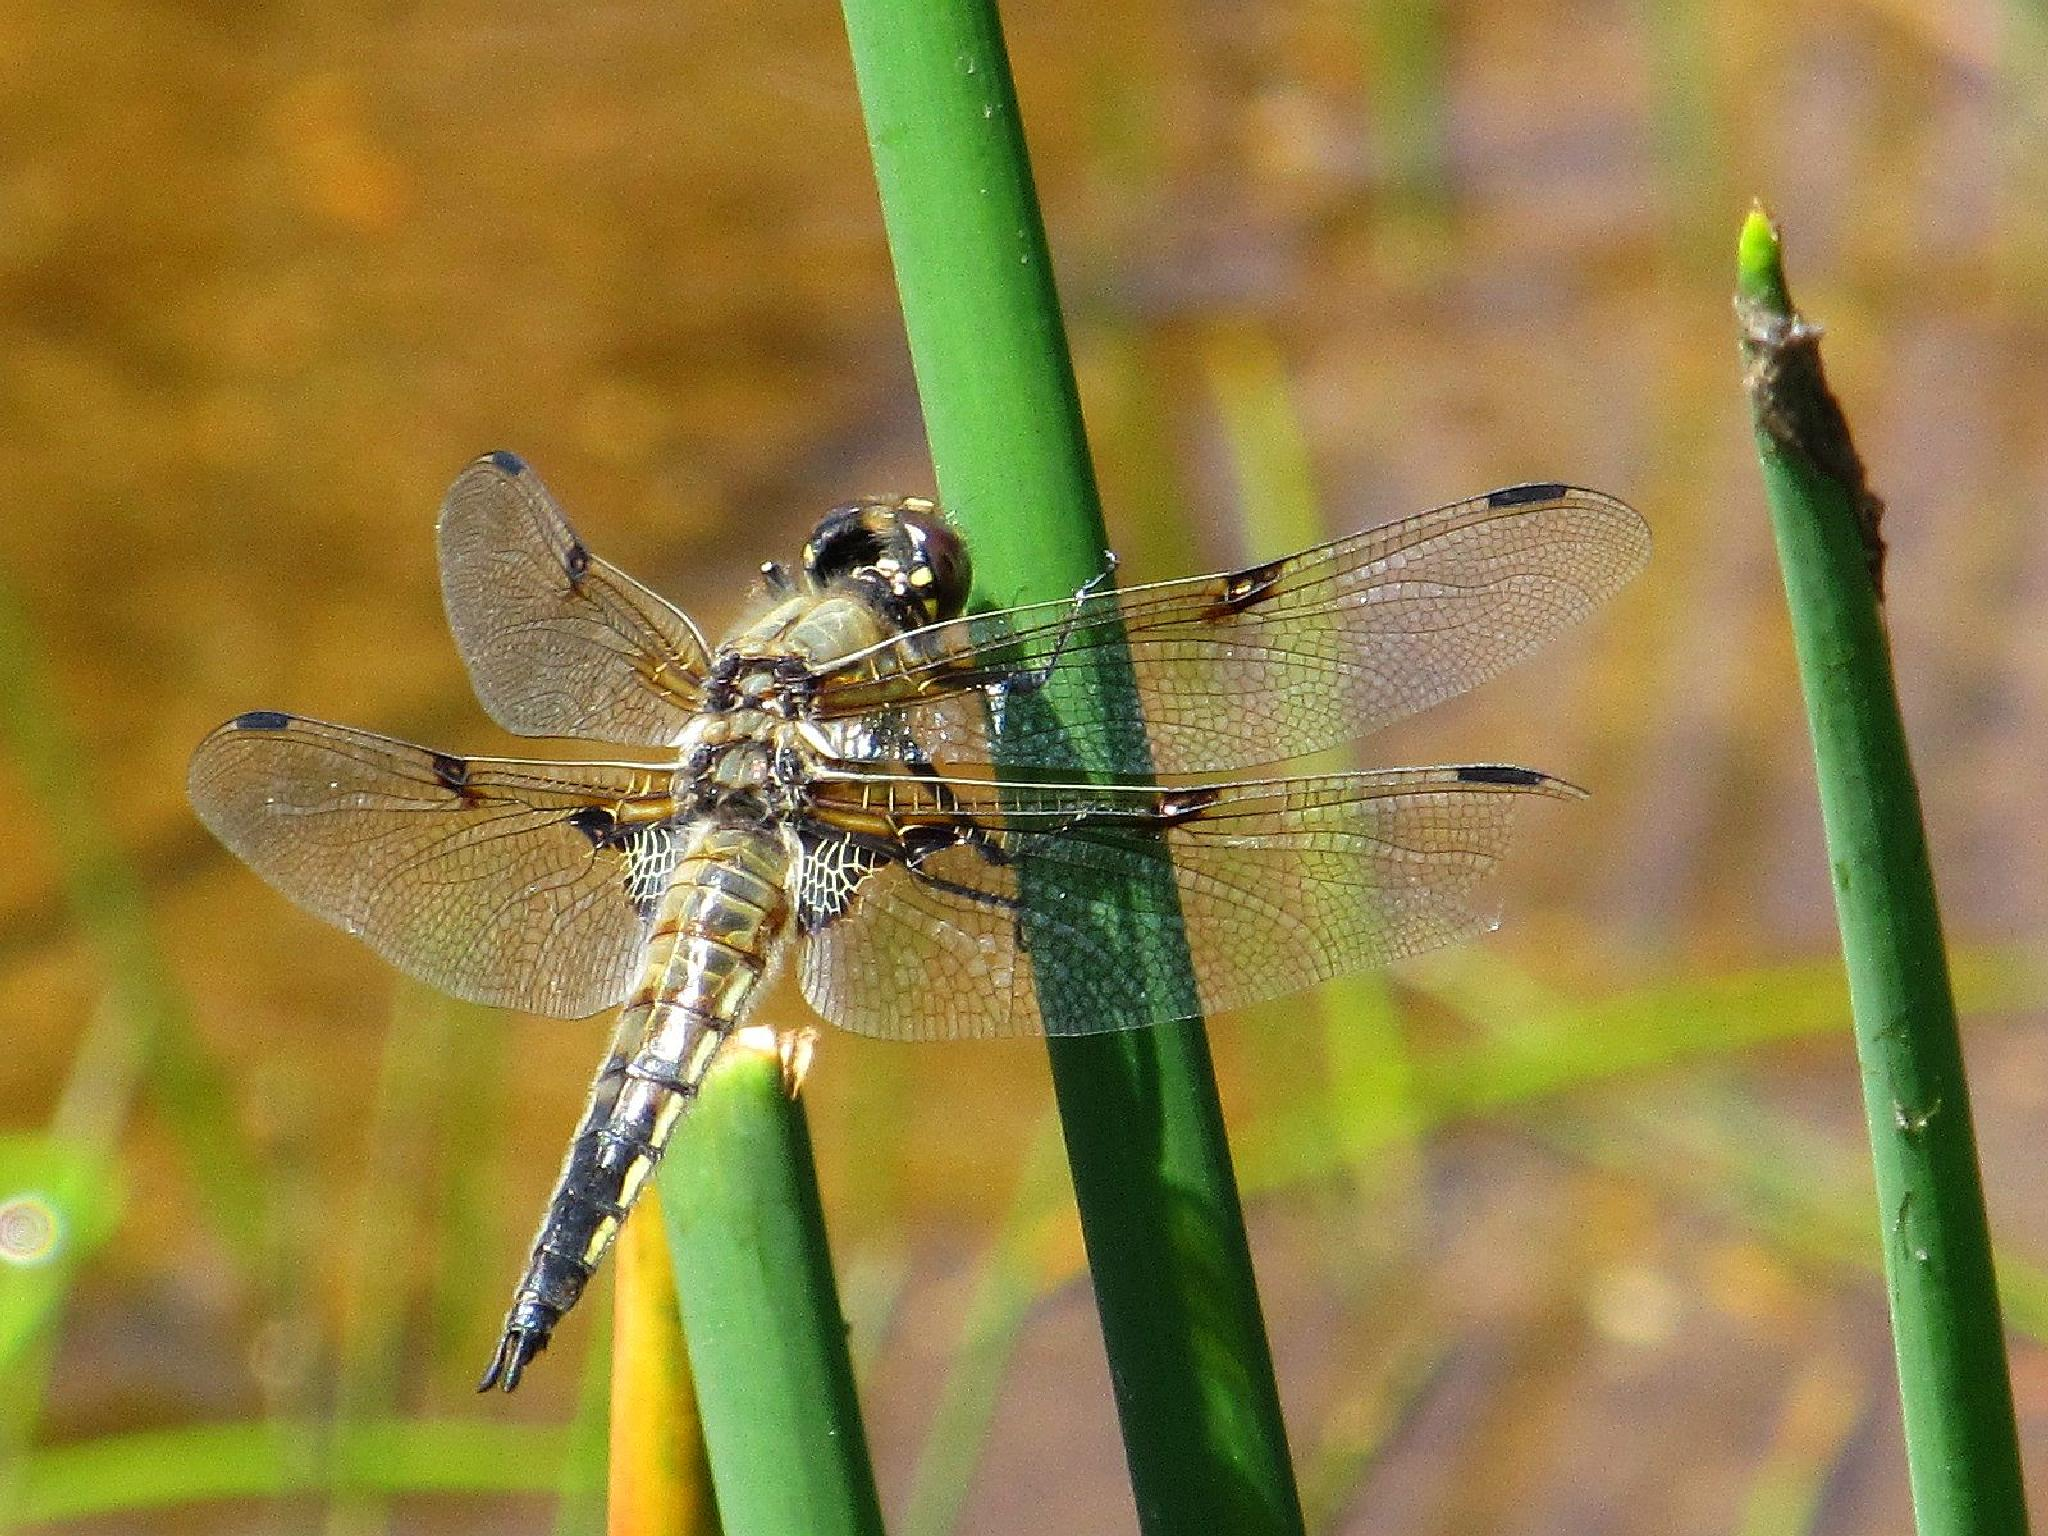 Dragonfly in the sun by Ruth Moore